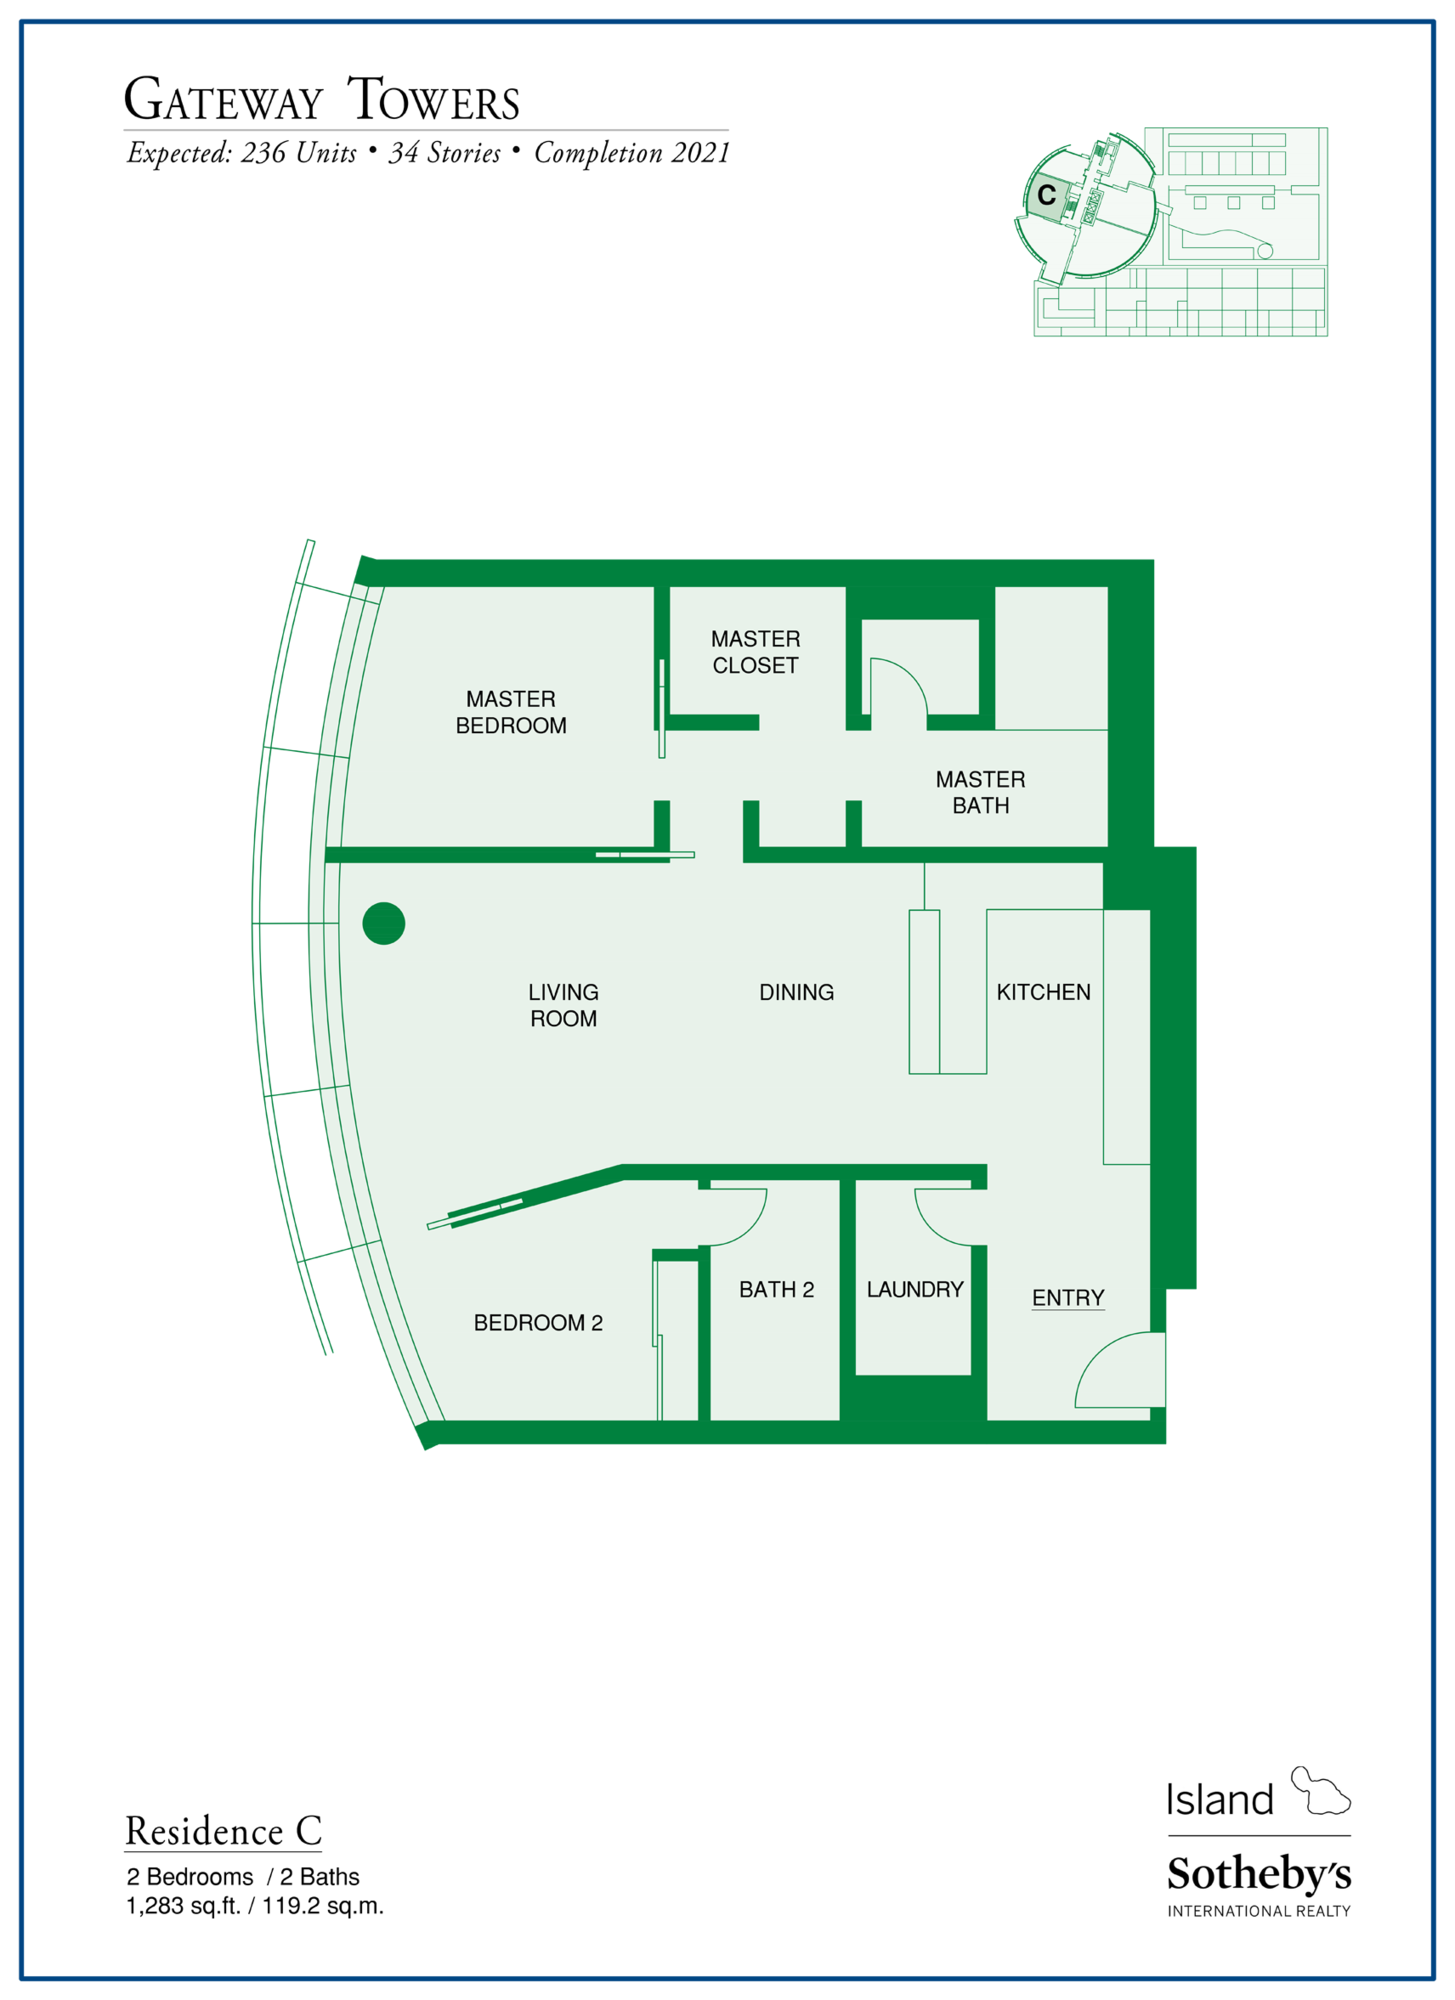 Gateway Towers Honolulu Floor Plan C in Kakaako